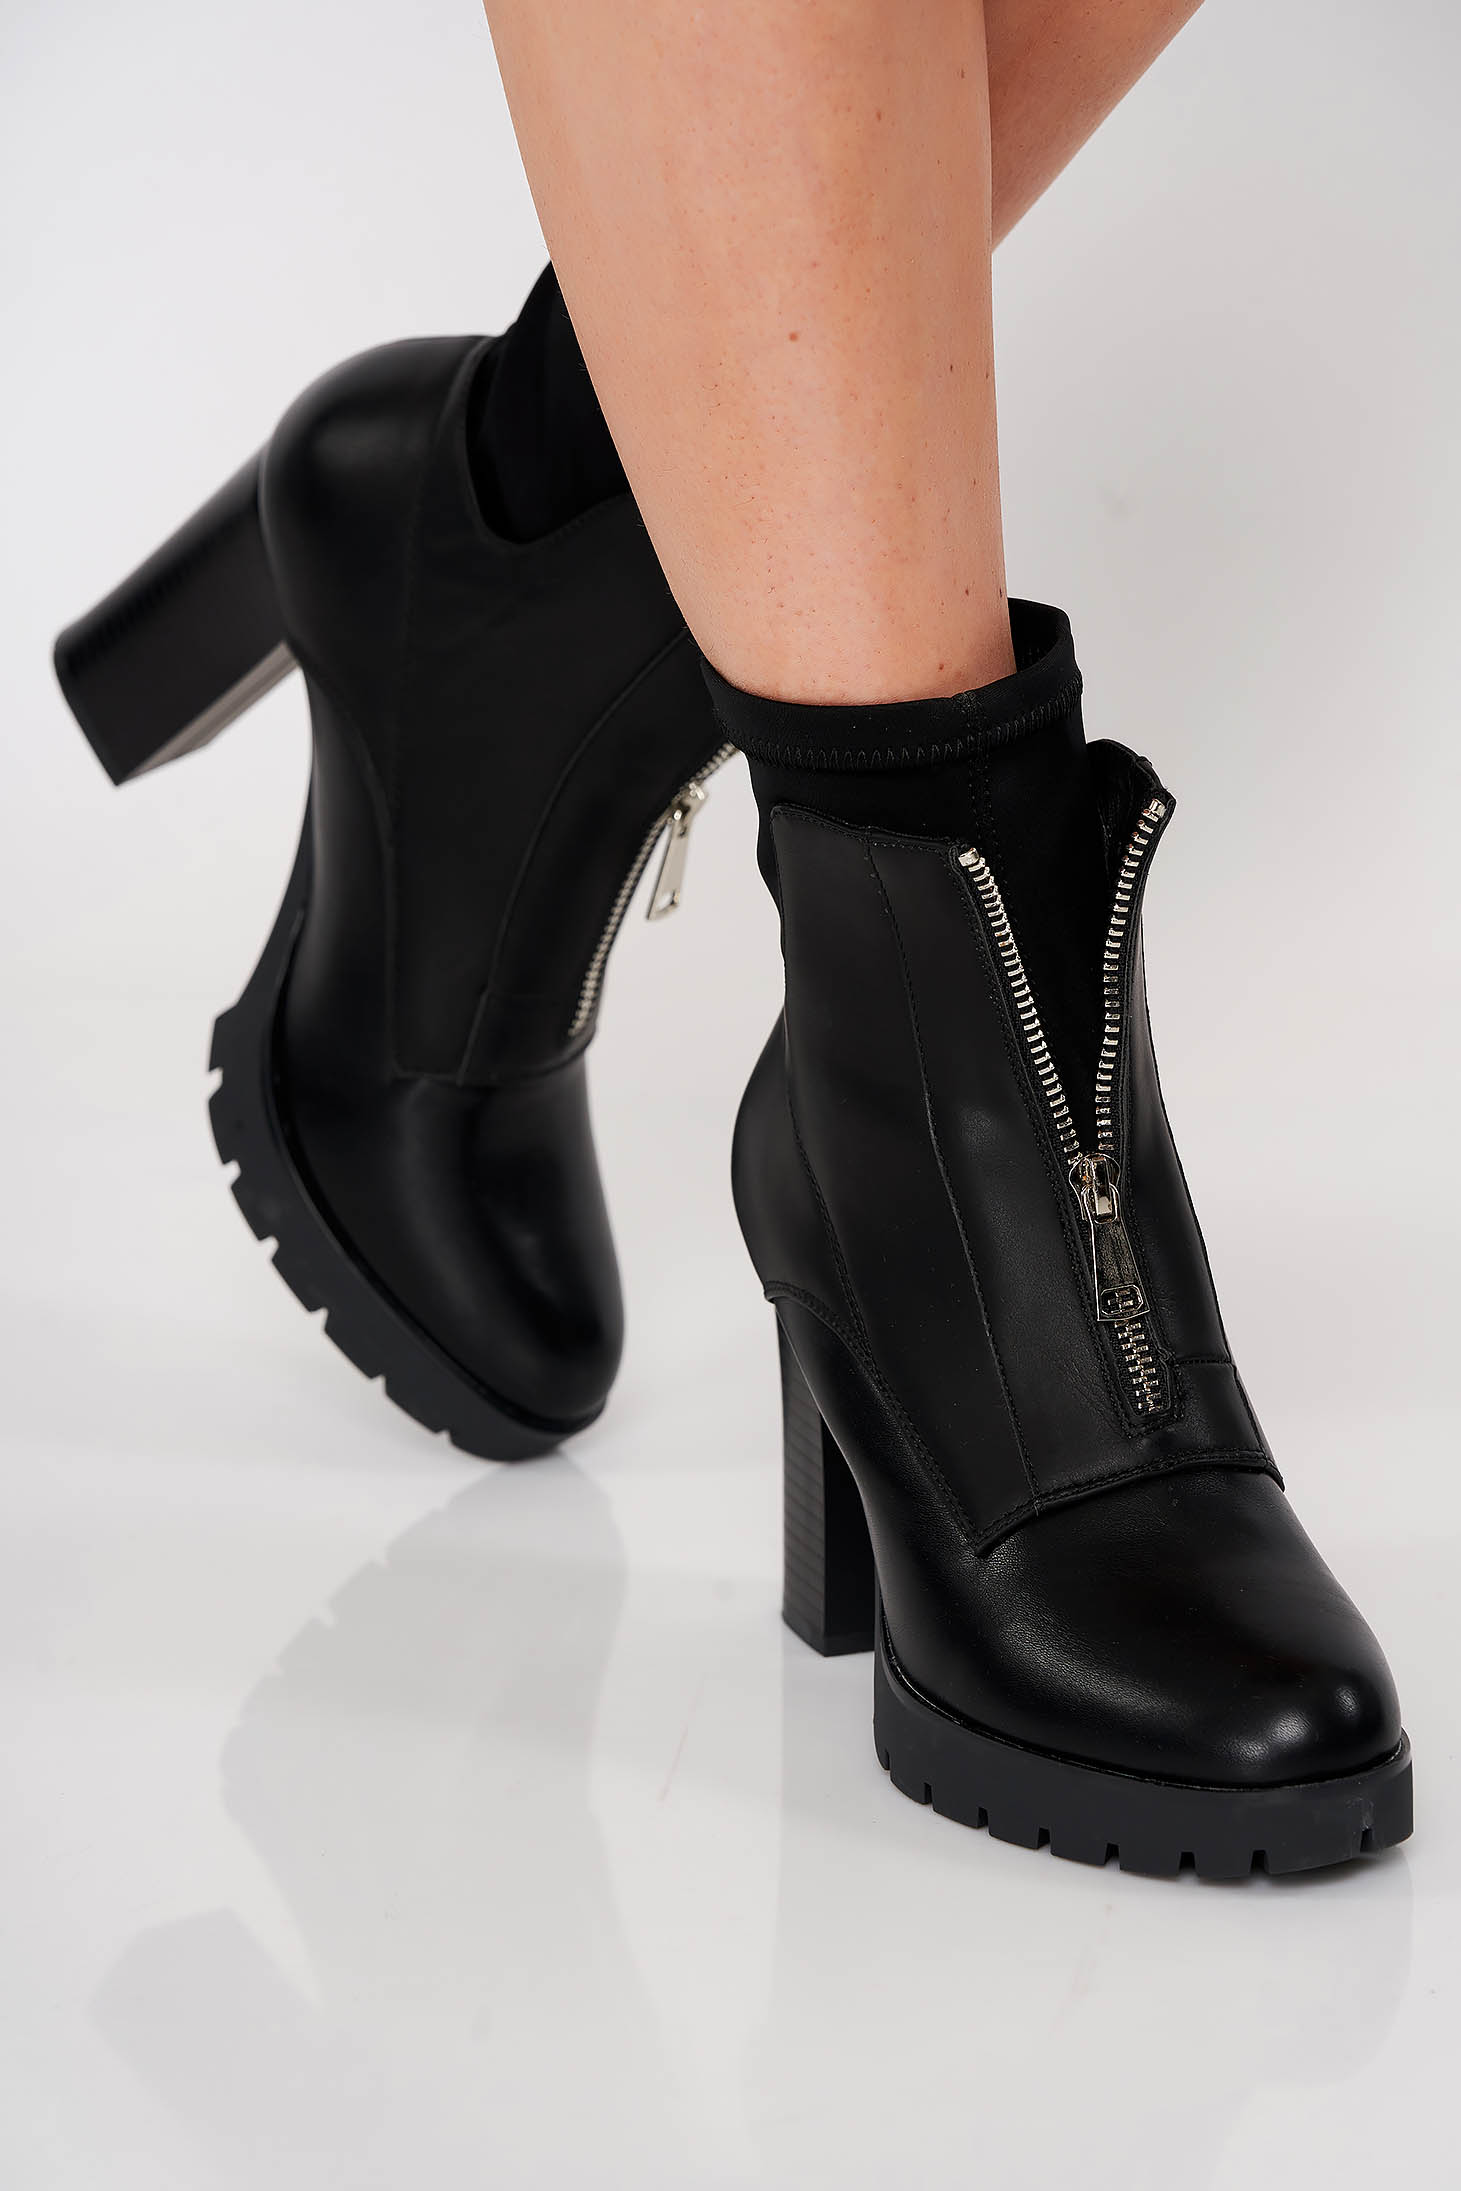 Black casual ankle boots from ecological leather zipper accessory